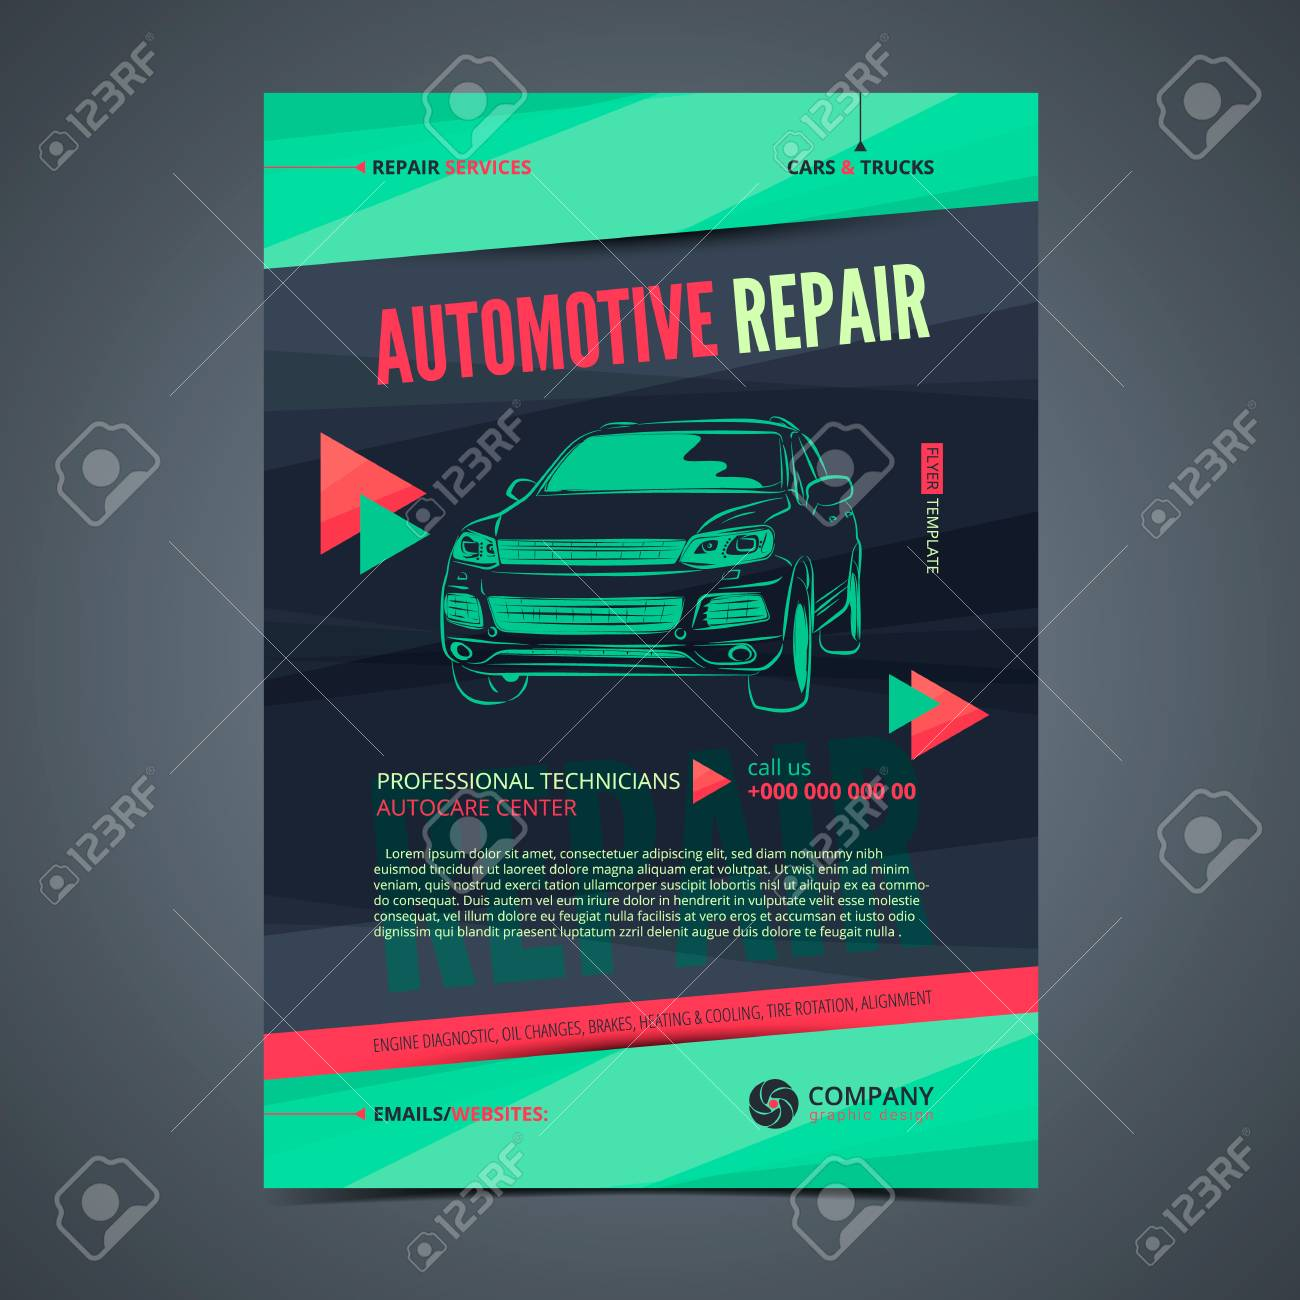 Auto Repair Services Layout Templates Automobile Magazine Cover Royalty Free Cliparts Vectors And Stock Illustration Image 81195215